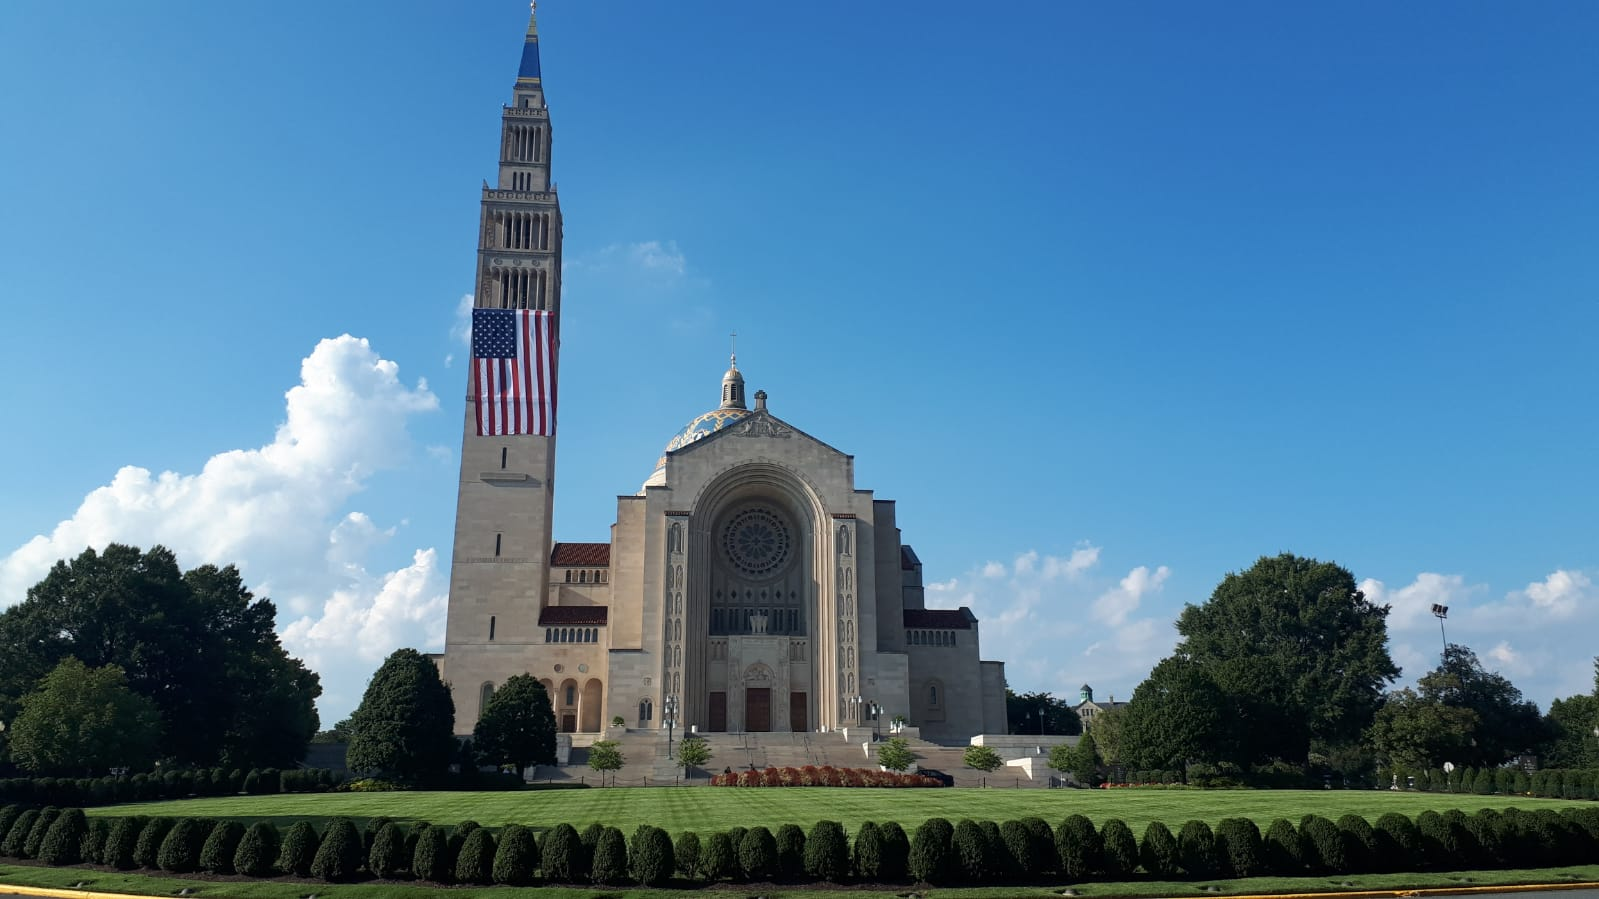 Basilica of the National Shrine of the Immaculate Conception  - Washington, DC.